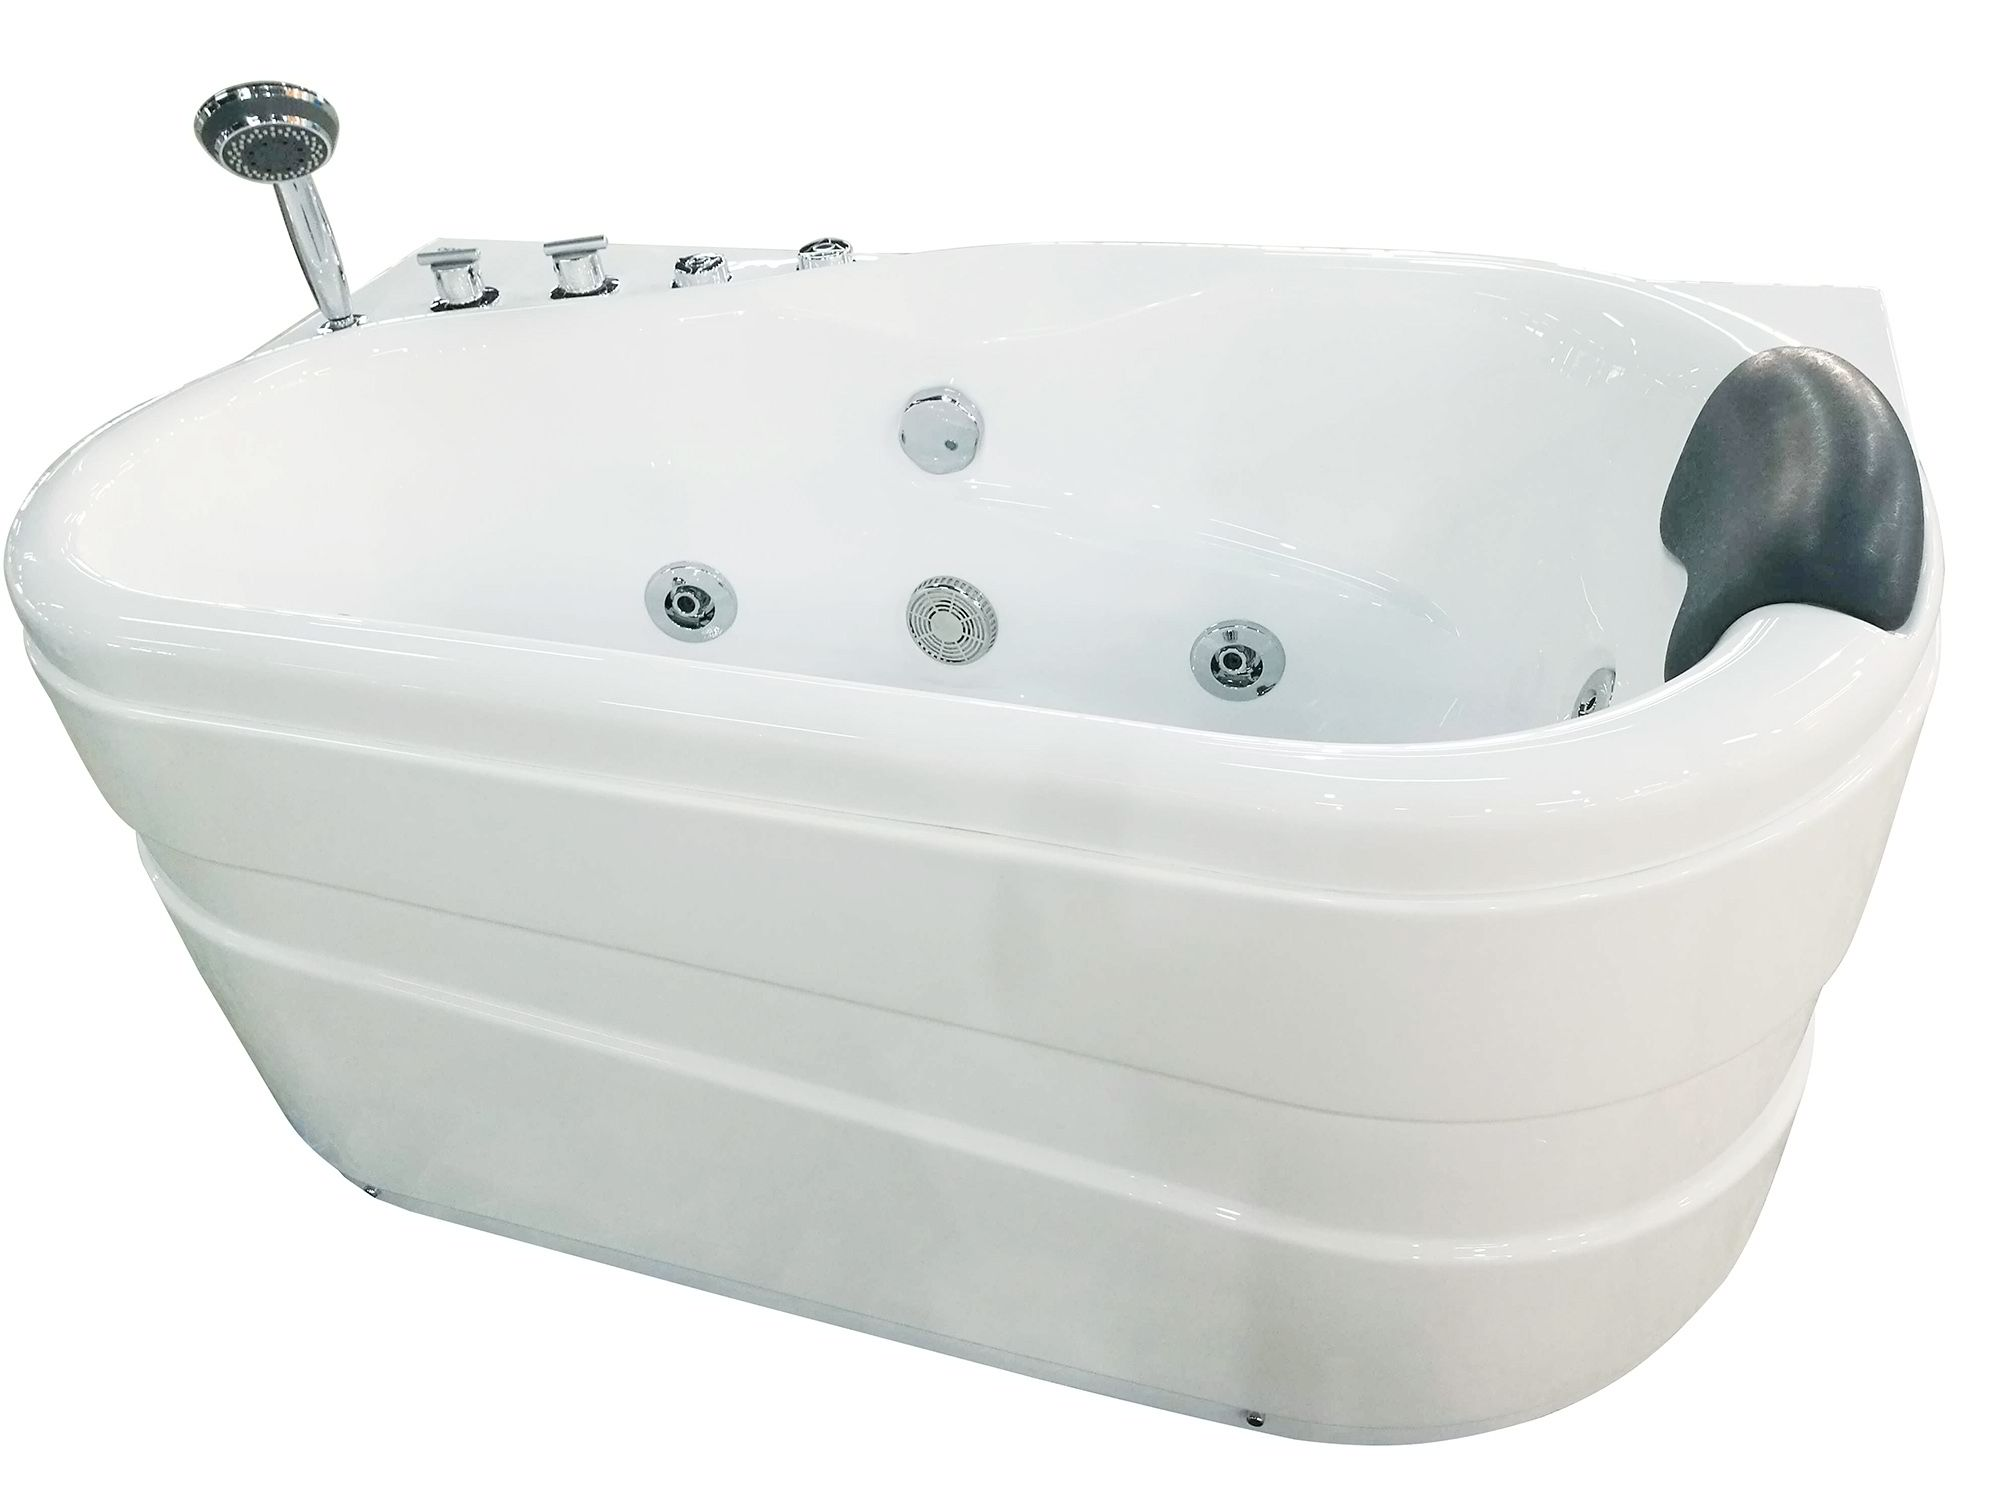 EAGO AM175-L  5'' White Acrylic Corner Whirpool Bathtub - Drain on Left